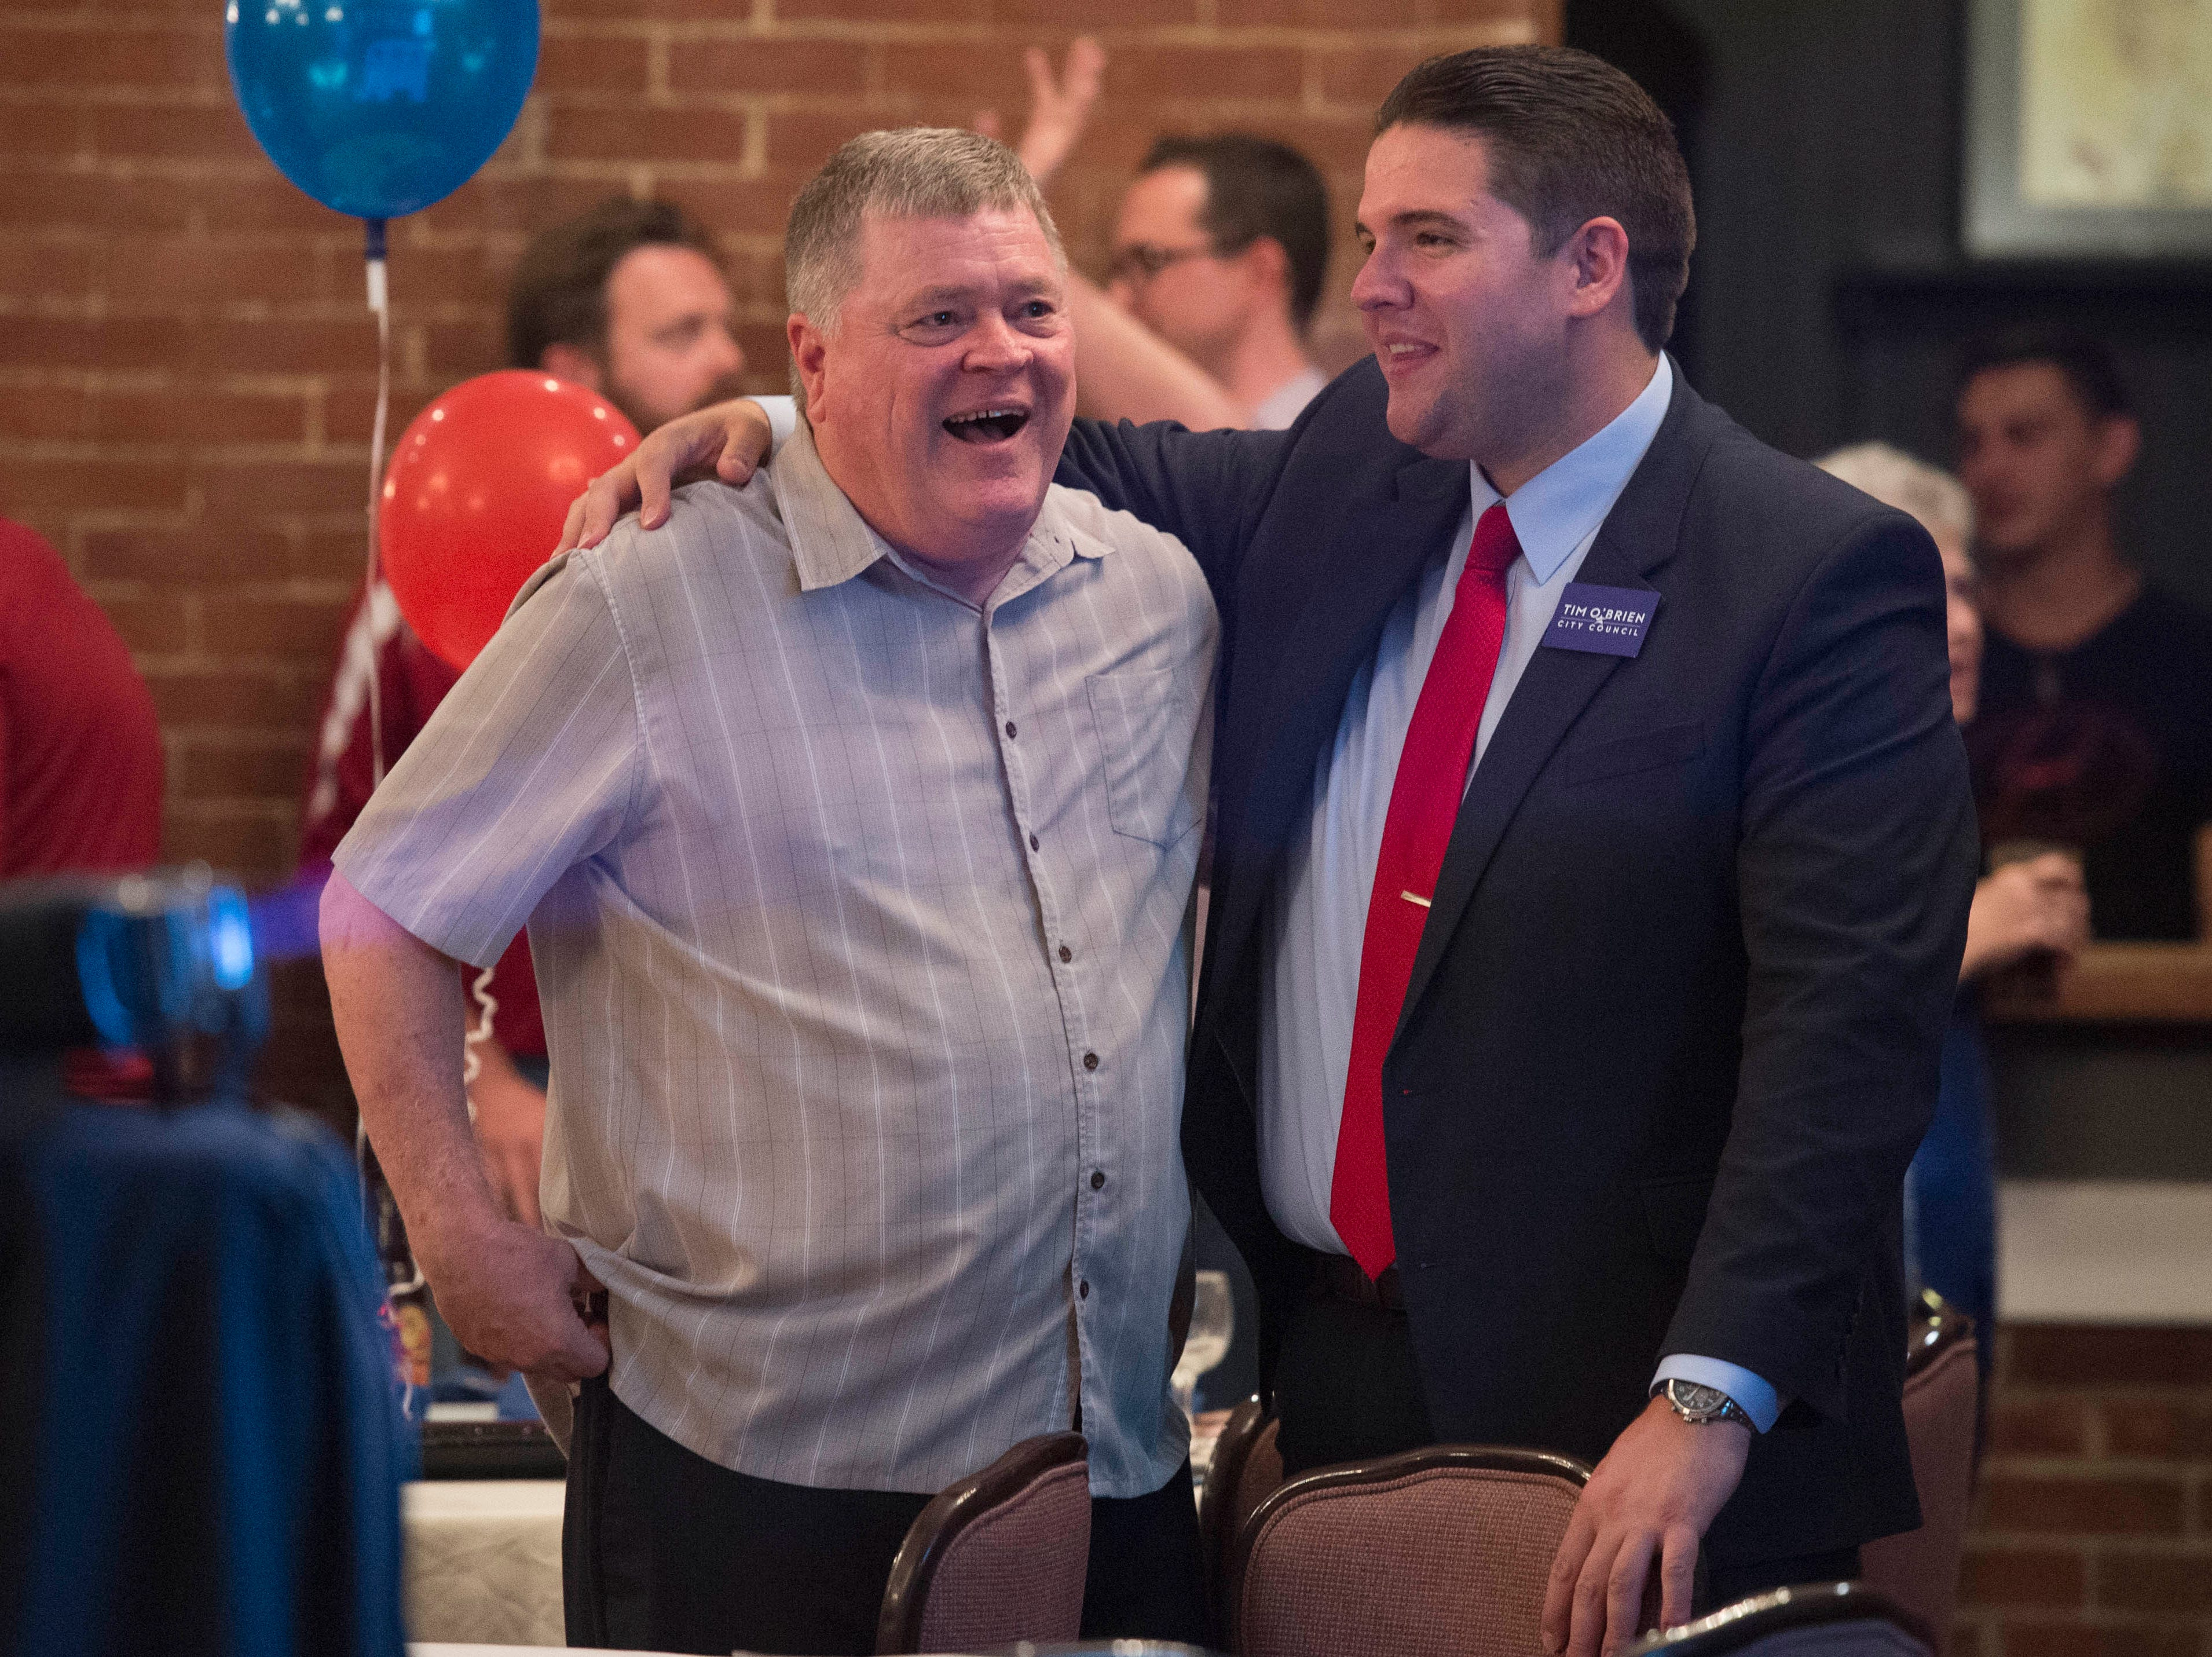 Republican candidates Ron Beane, left, and Tim O'Brien, right, congratulate each other as the primary results come in Tuesday, May 7, 2019.